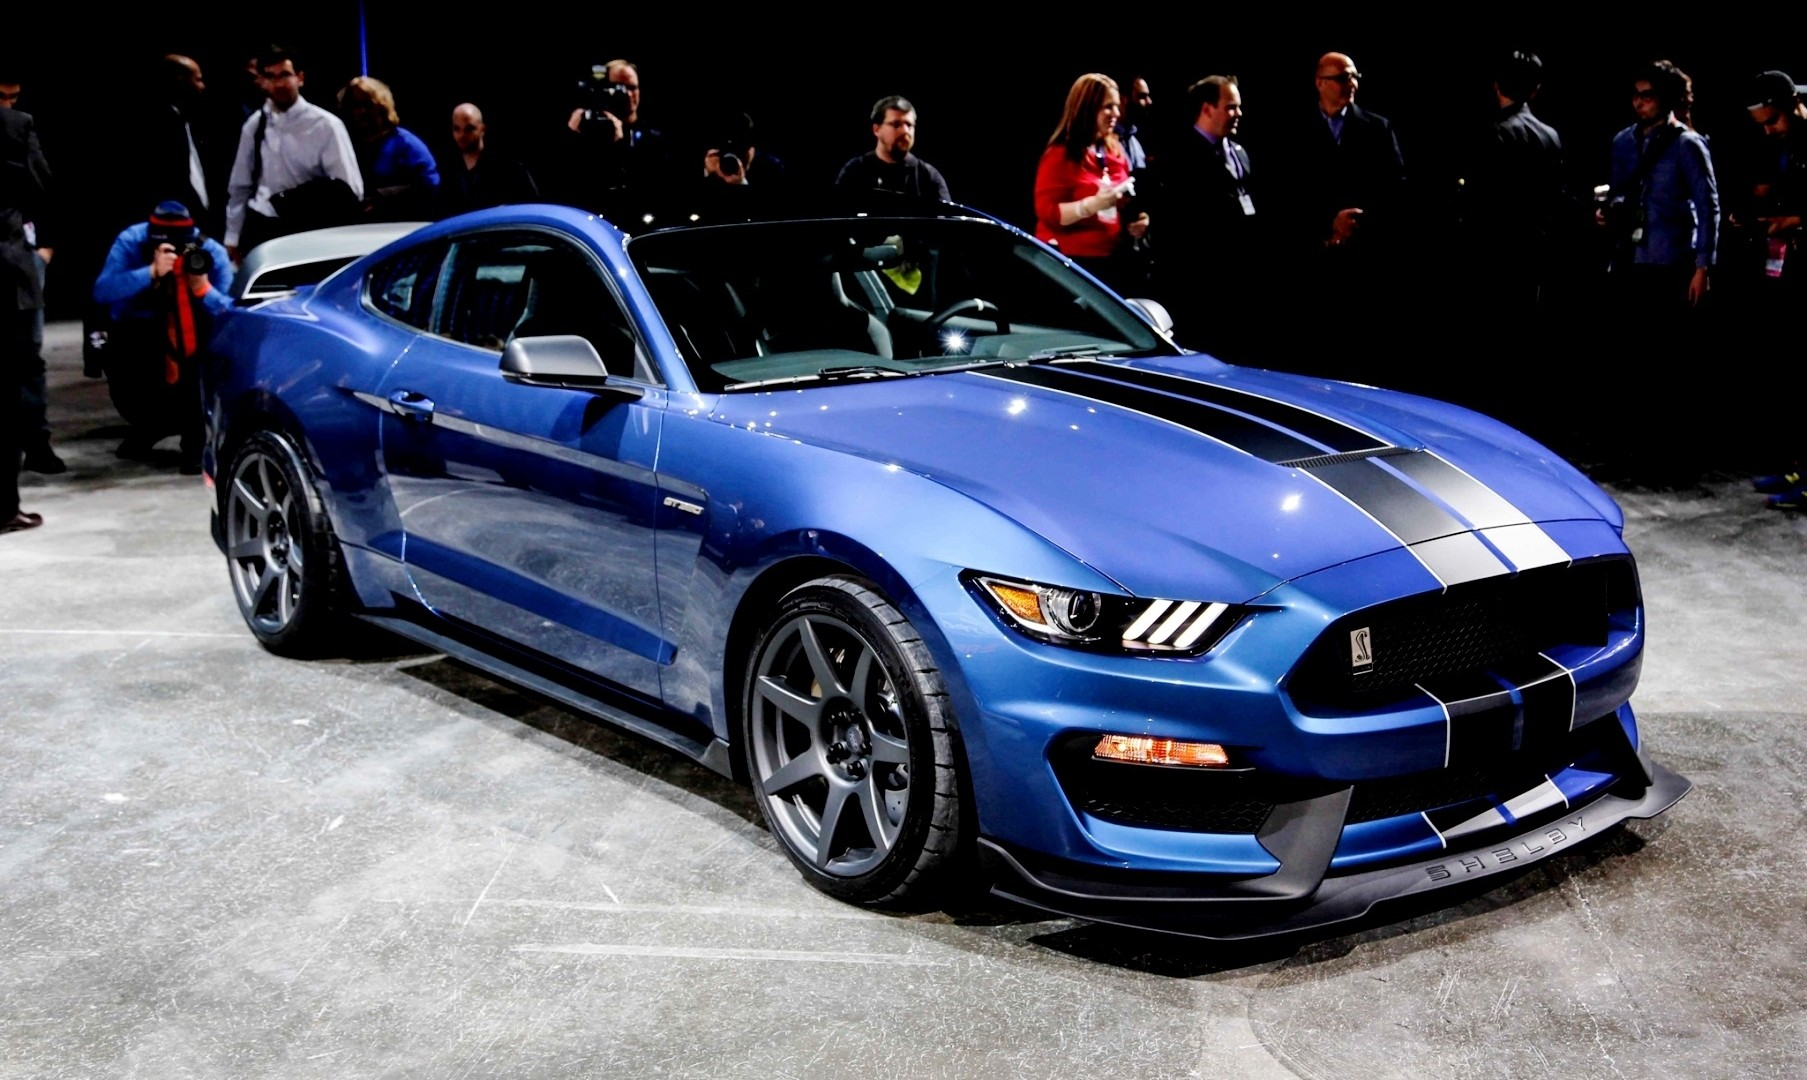 ford mustang shelby gt350 2016 hd wallpapers free download. Black Bedroom Furniture Sets. Home Design Ideas